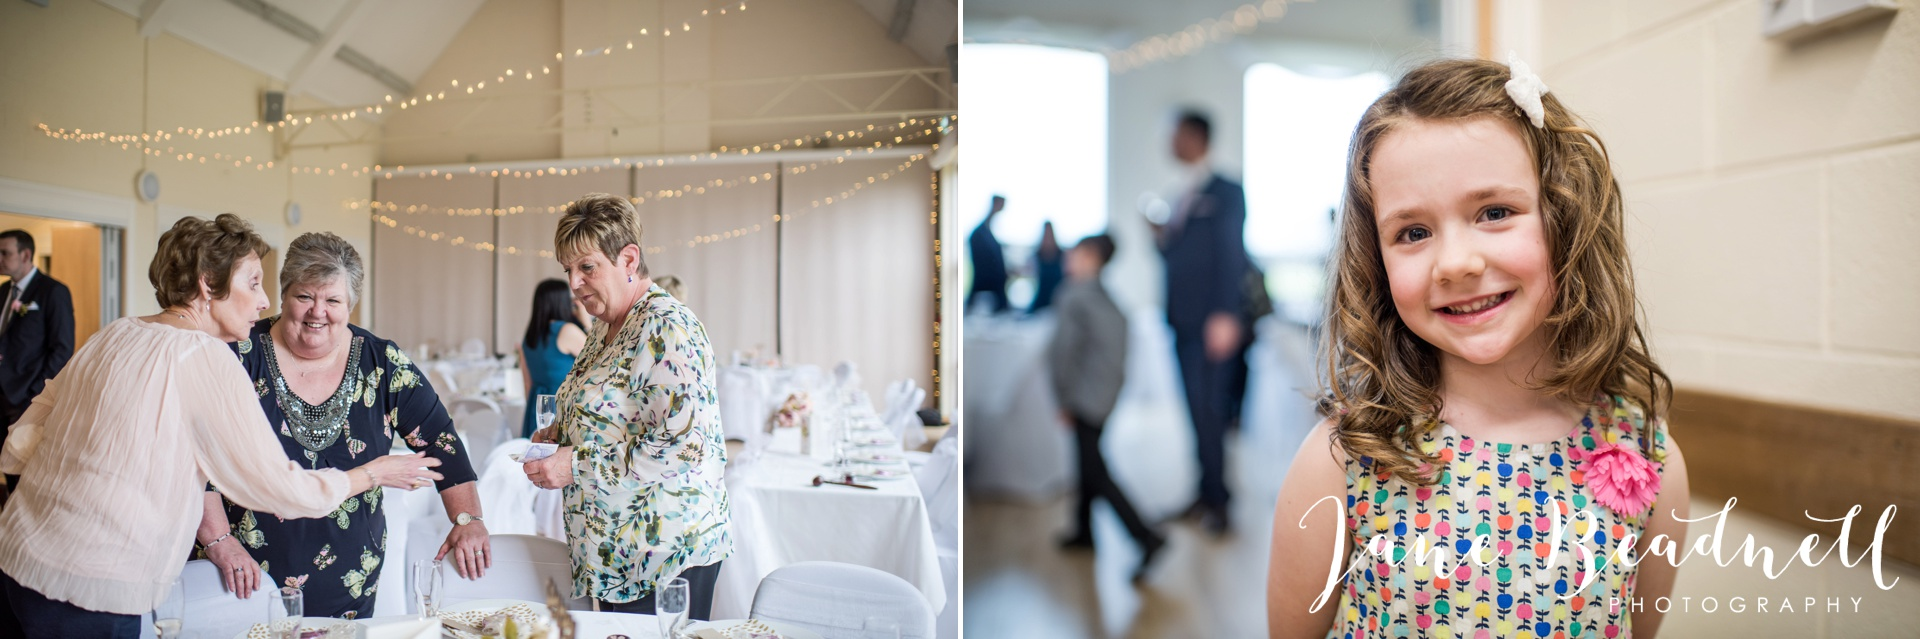 Cracoe Village Hall Wedding Photography by Jane Beadnell Photography fine art wedding photographer Yorkshire_0061